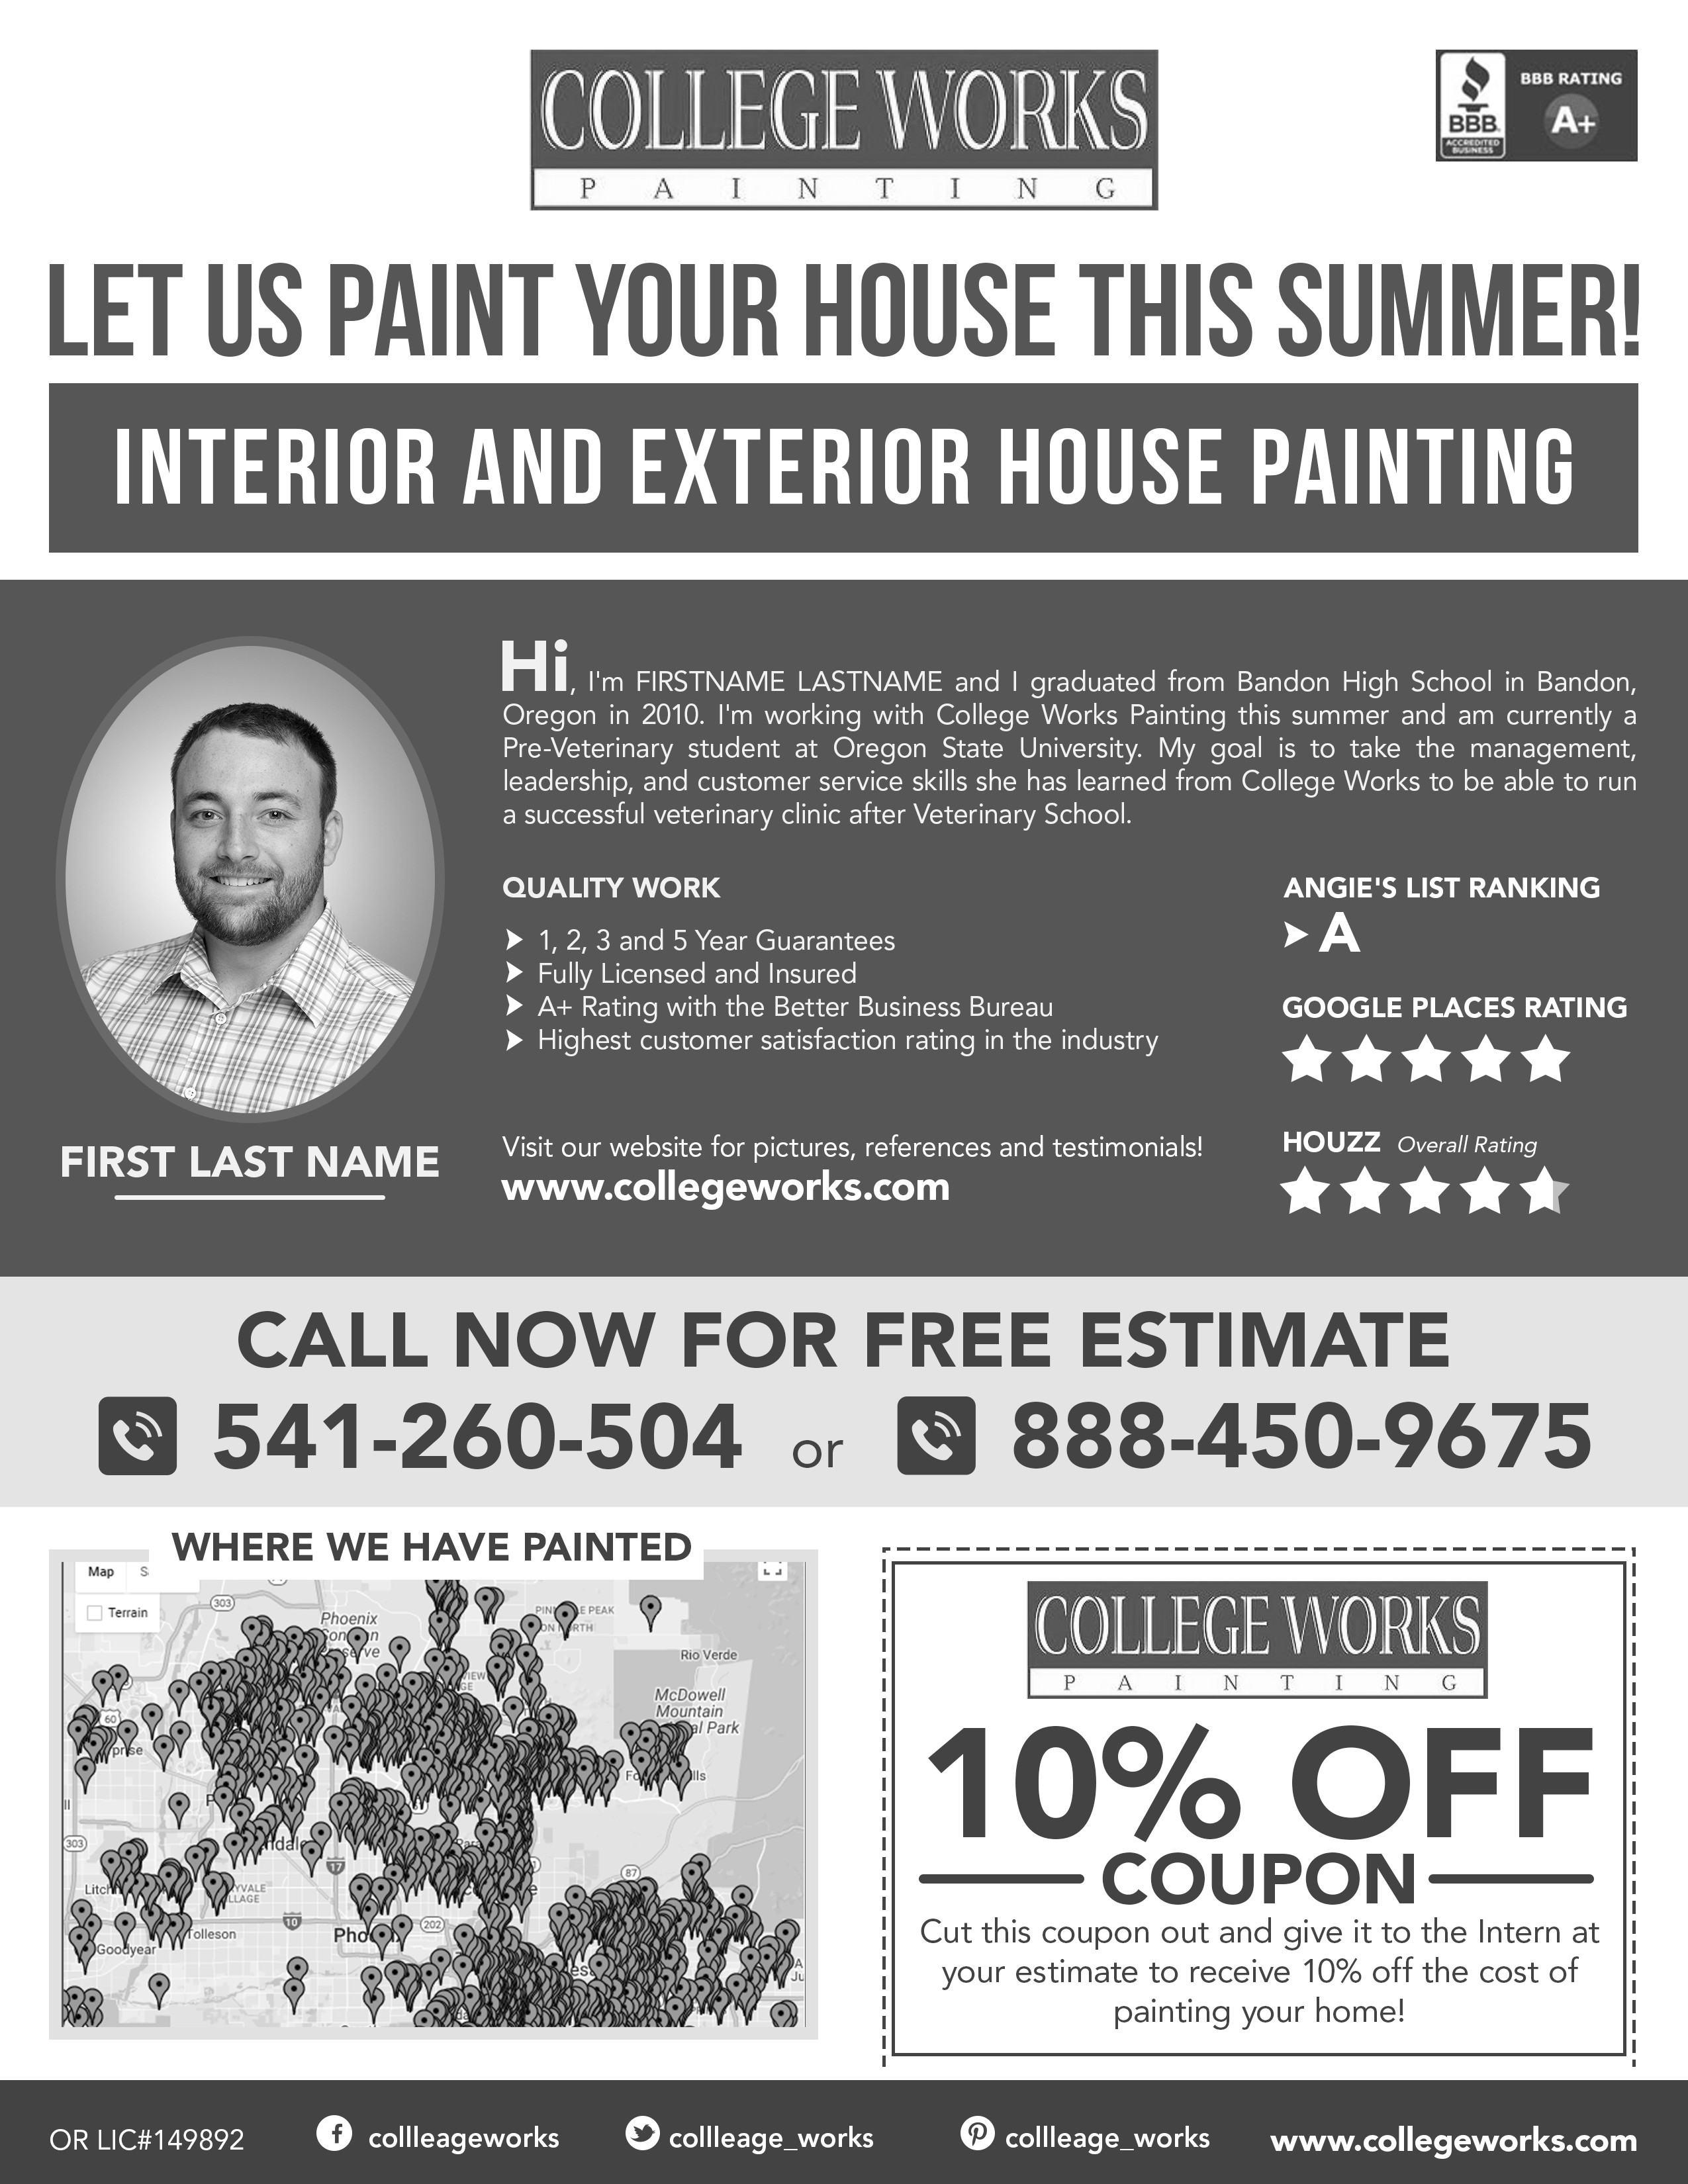 House Painting Flyer